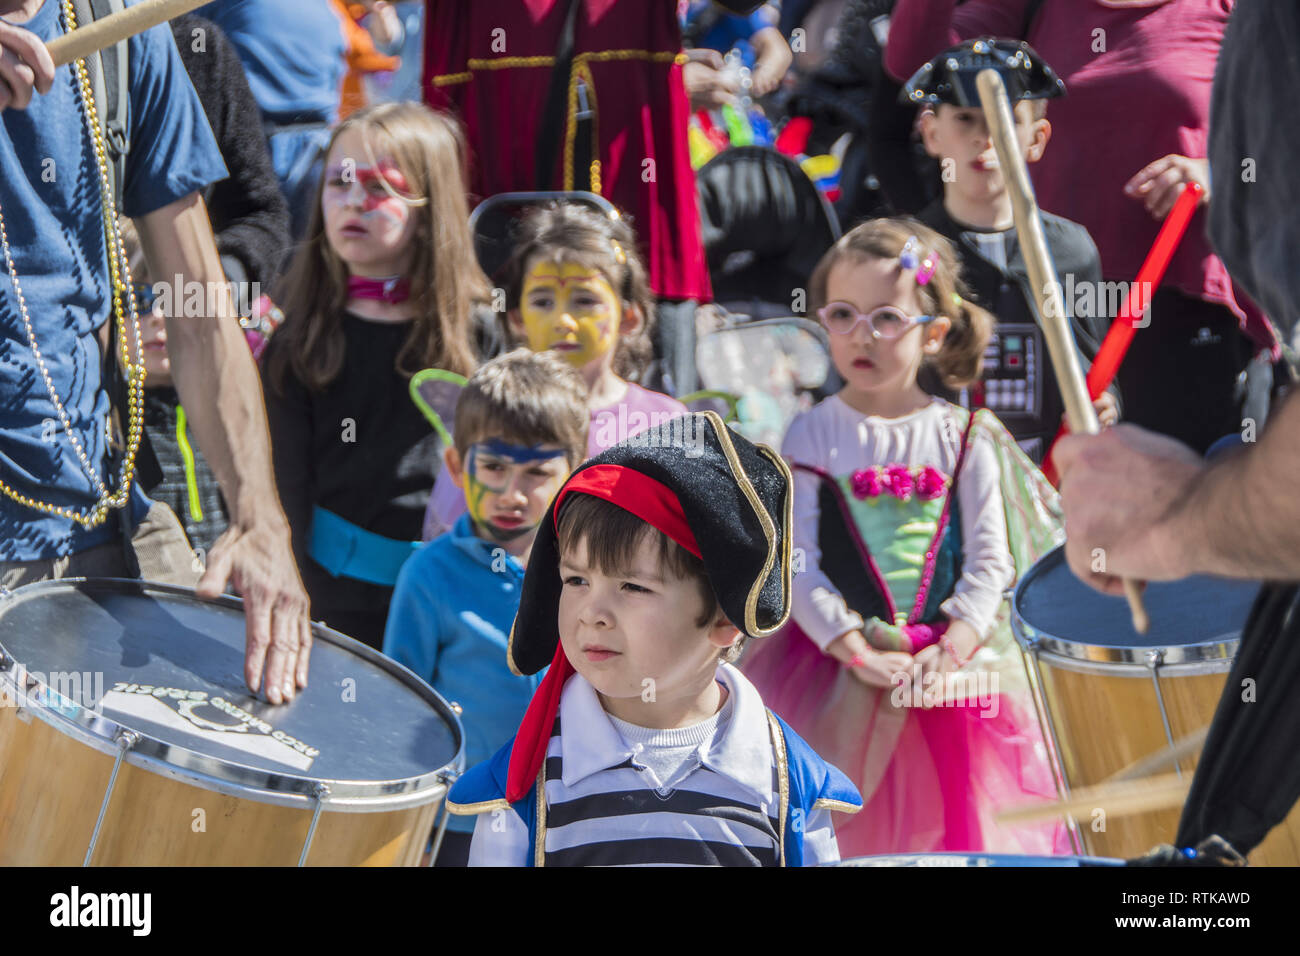 Madrid, Madrid, Spain  2nd Mar, 2019  Children are seen listening to